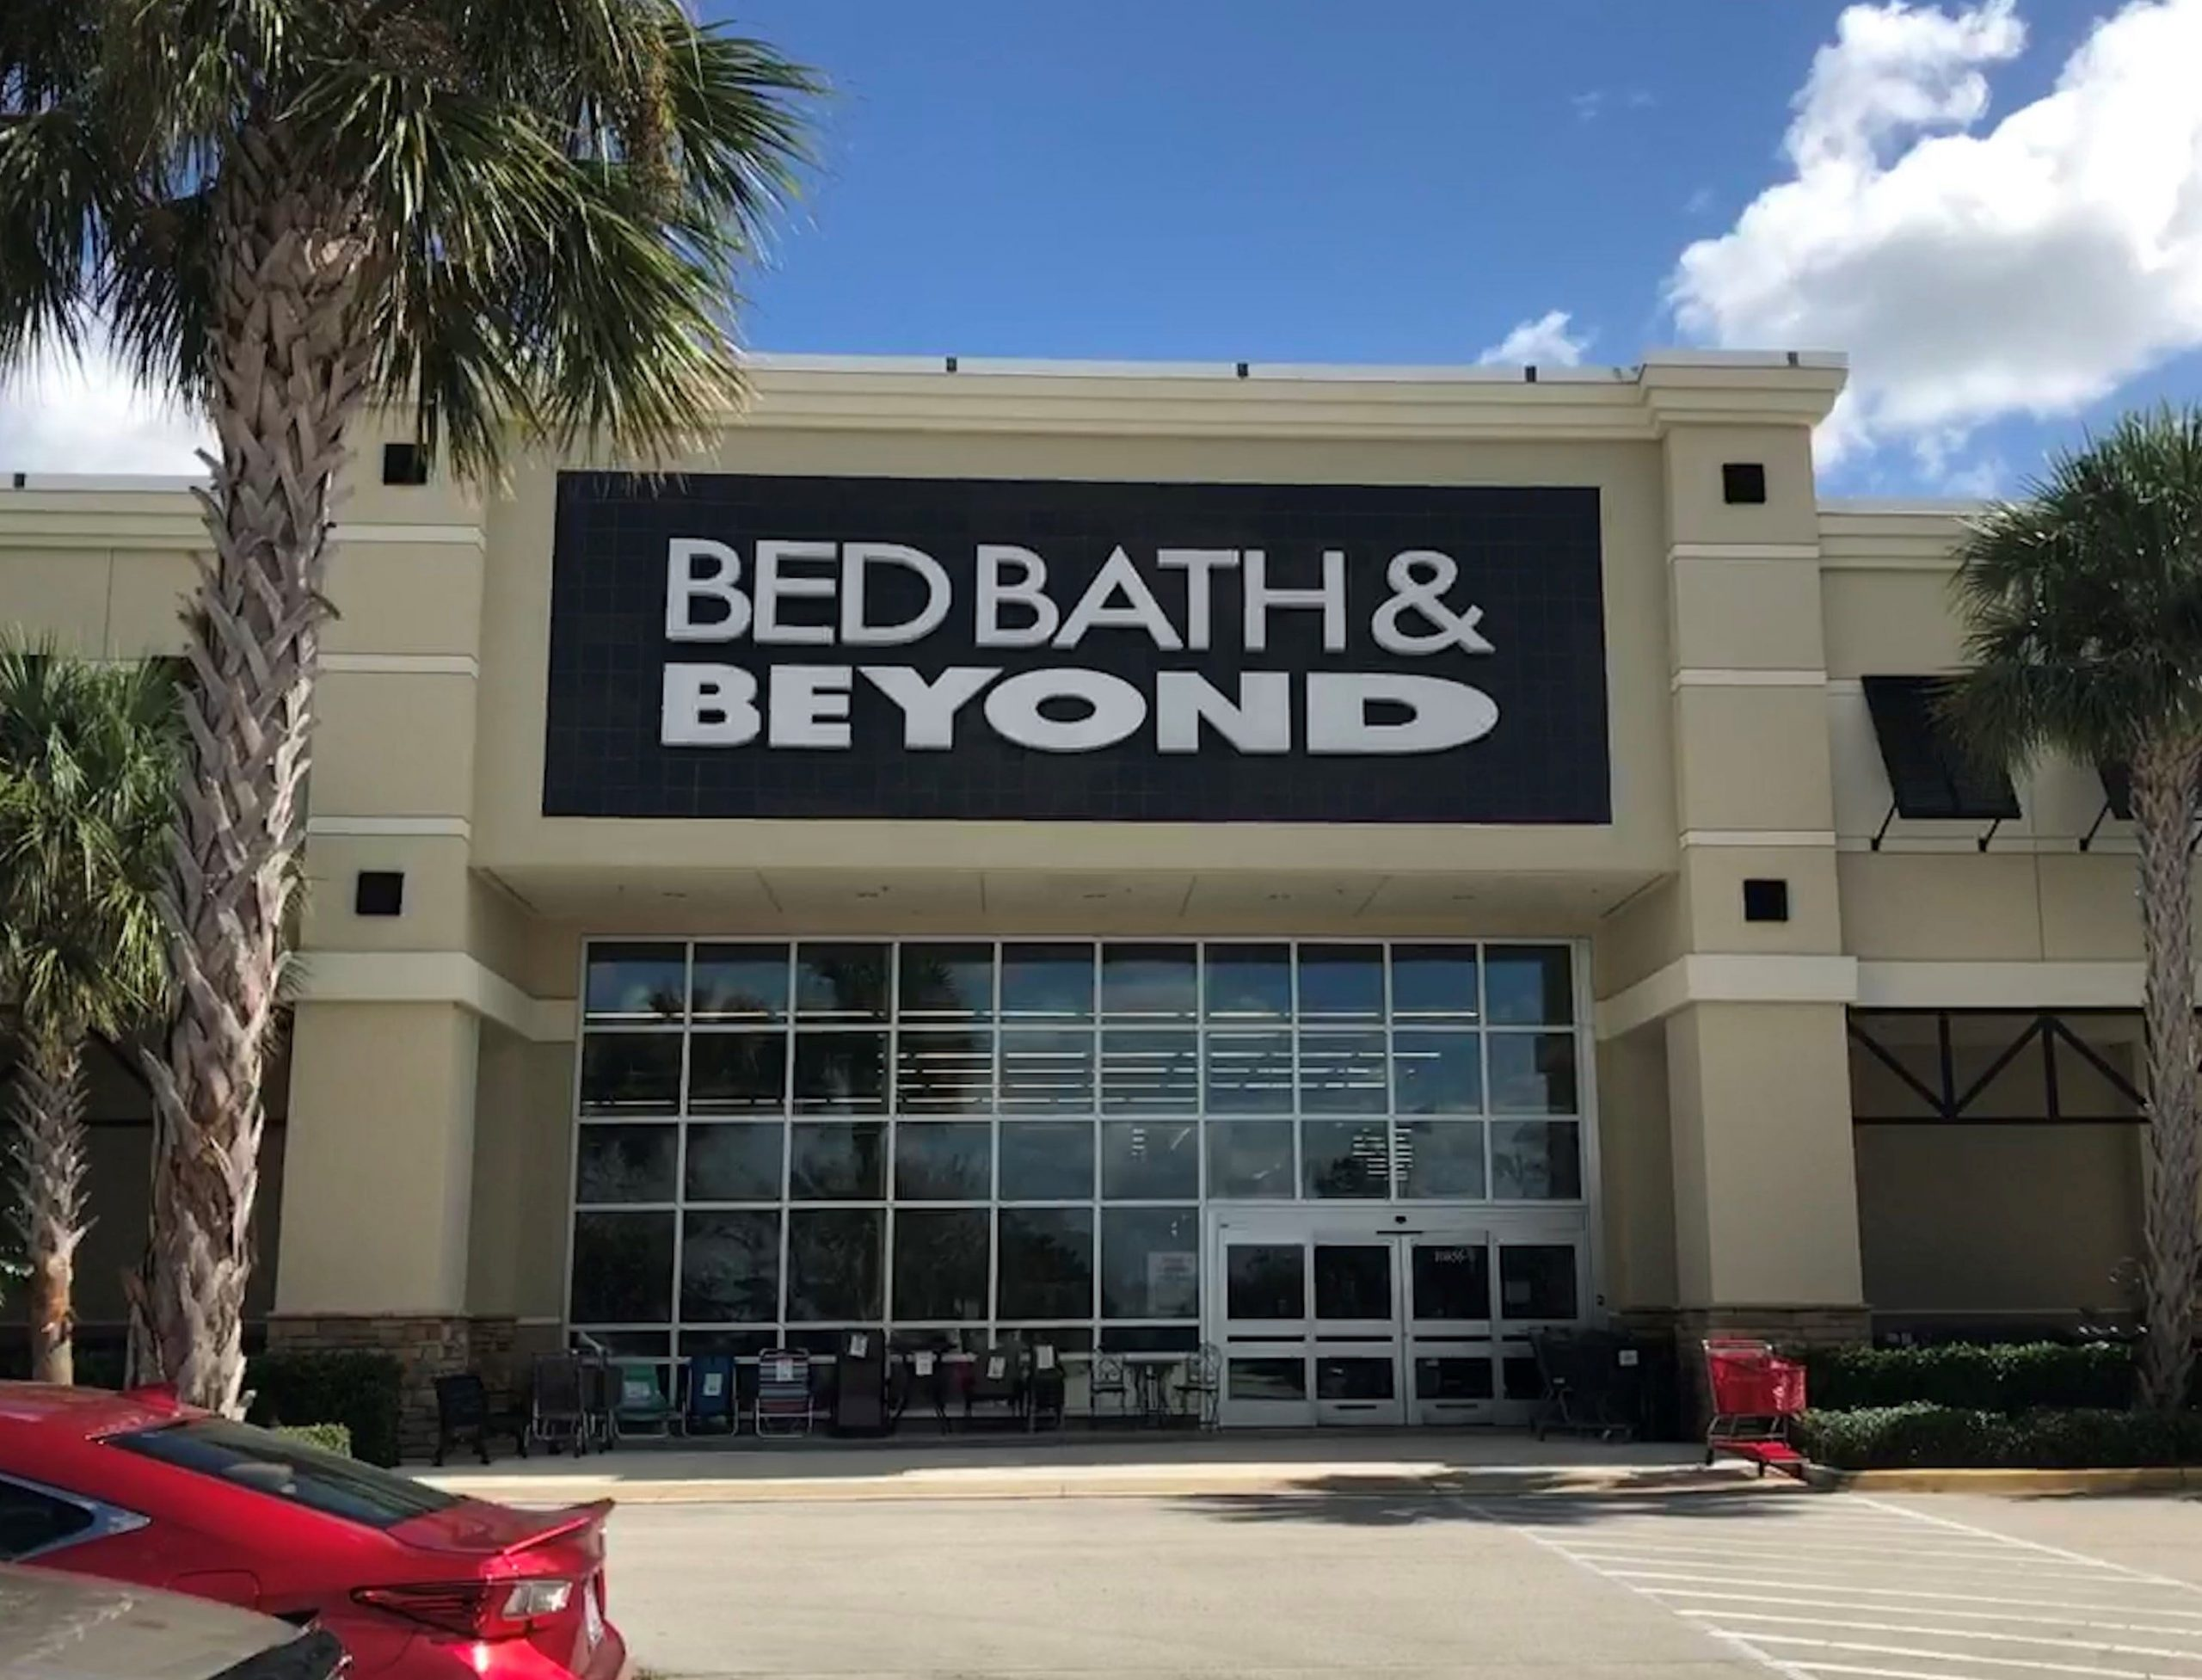 Is your Bed Bath & Beyond closing? See the list of stores slated to close by the end of February 2021